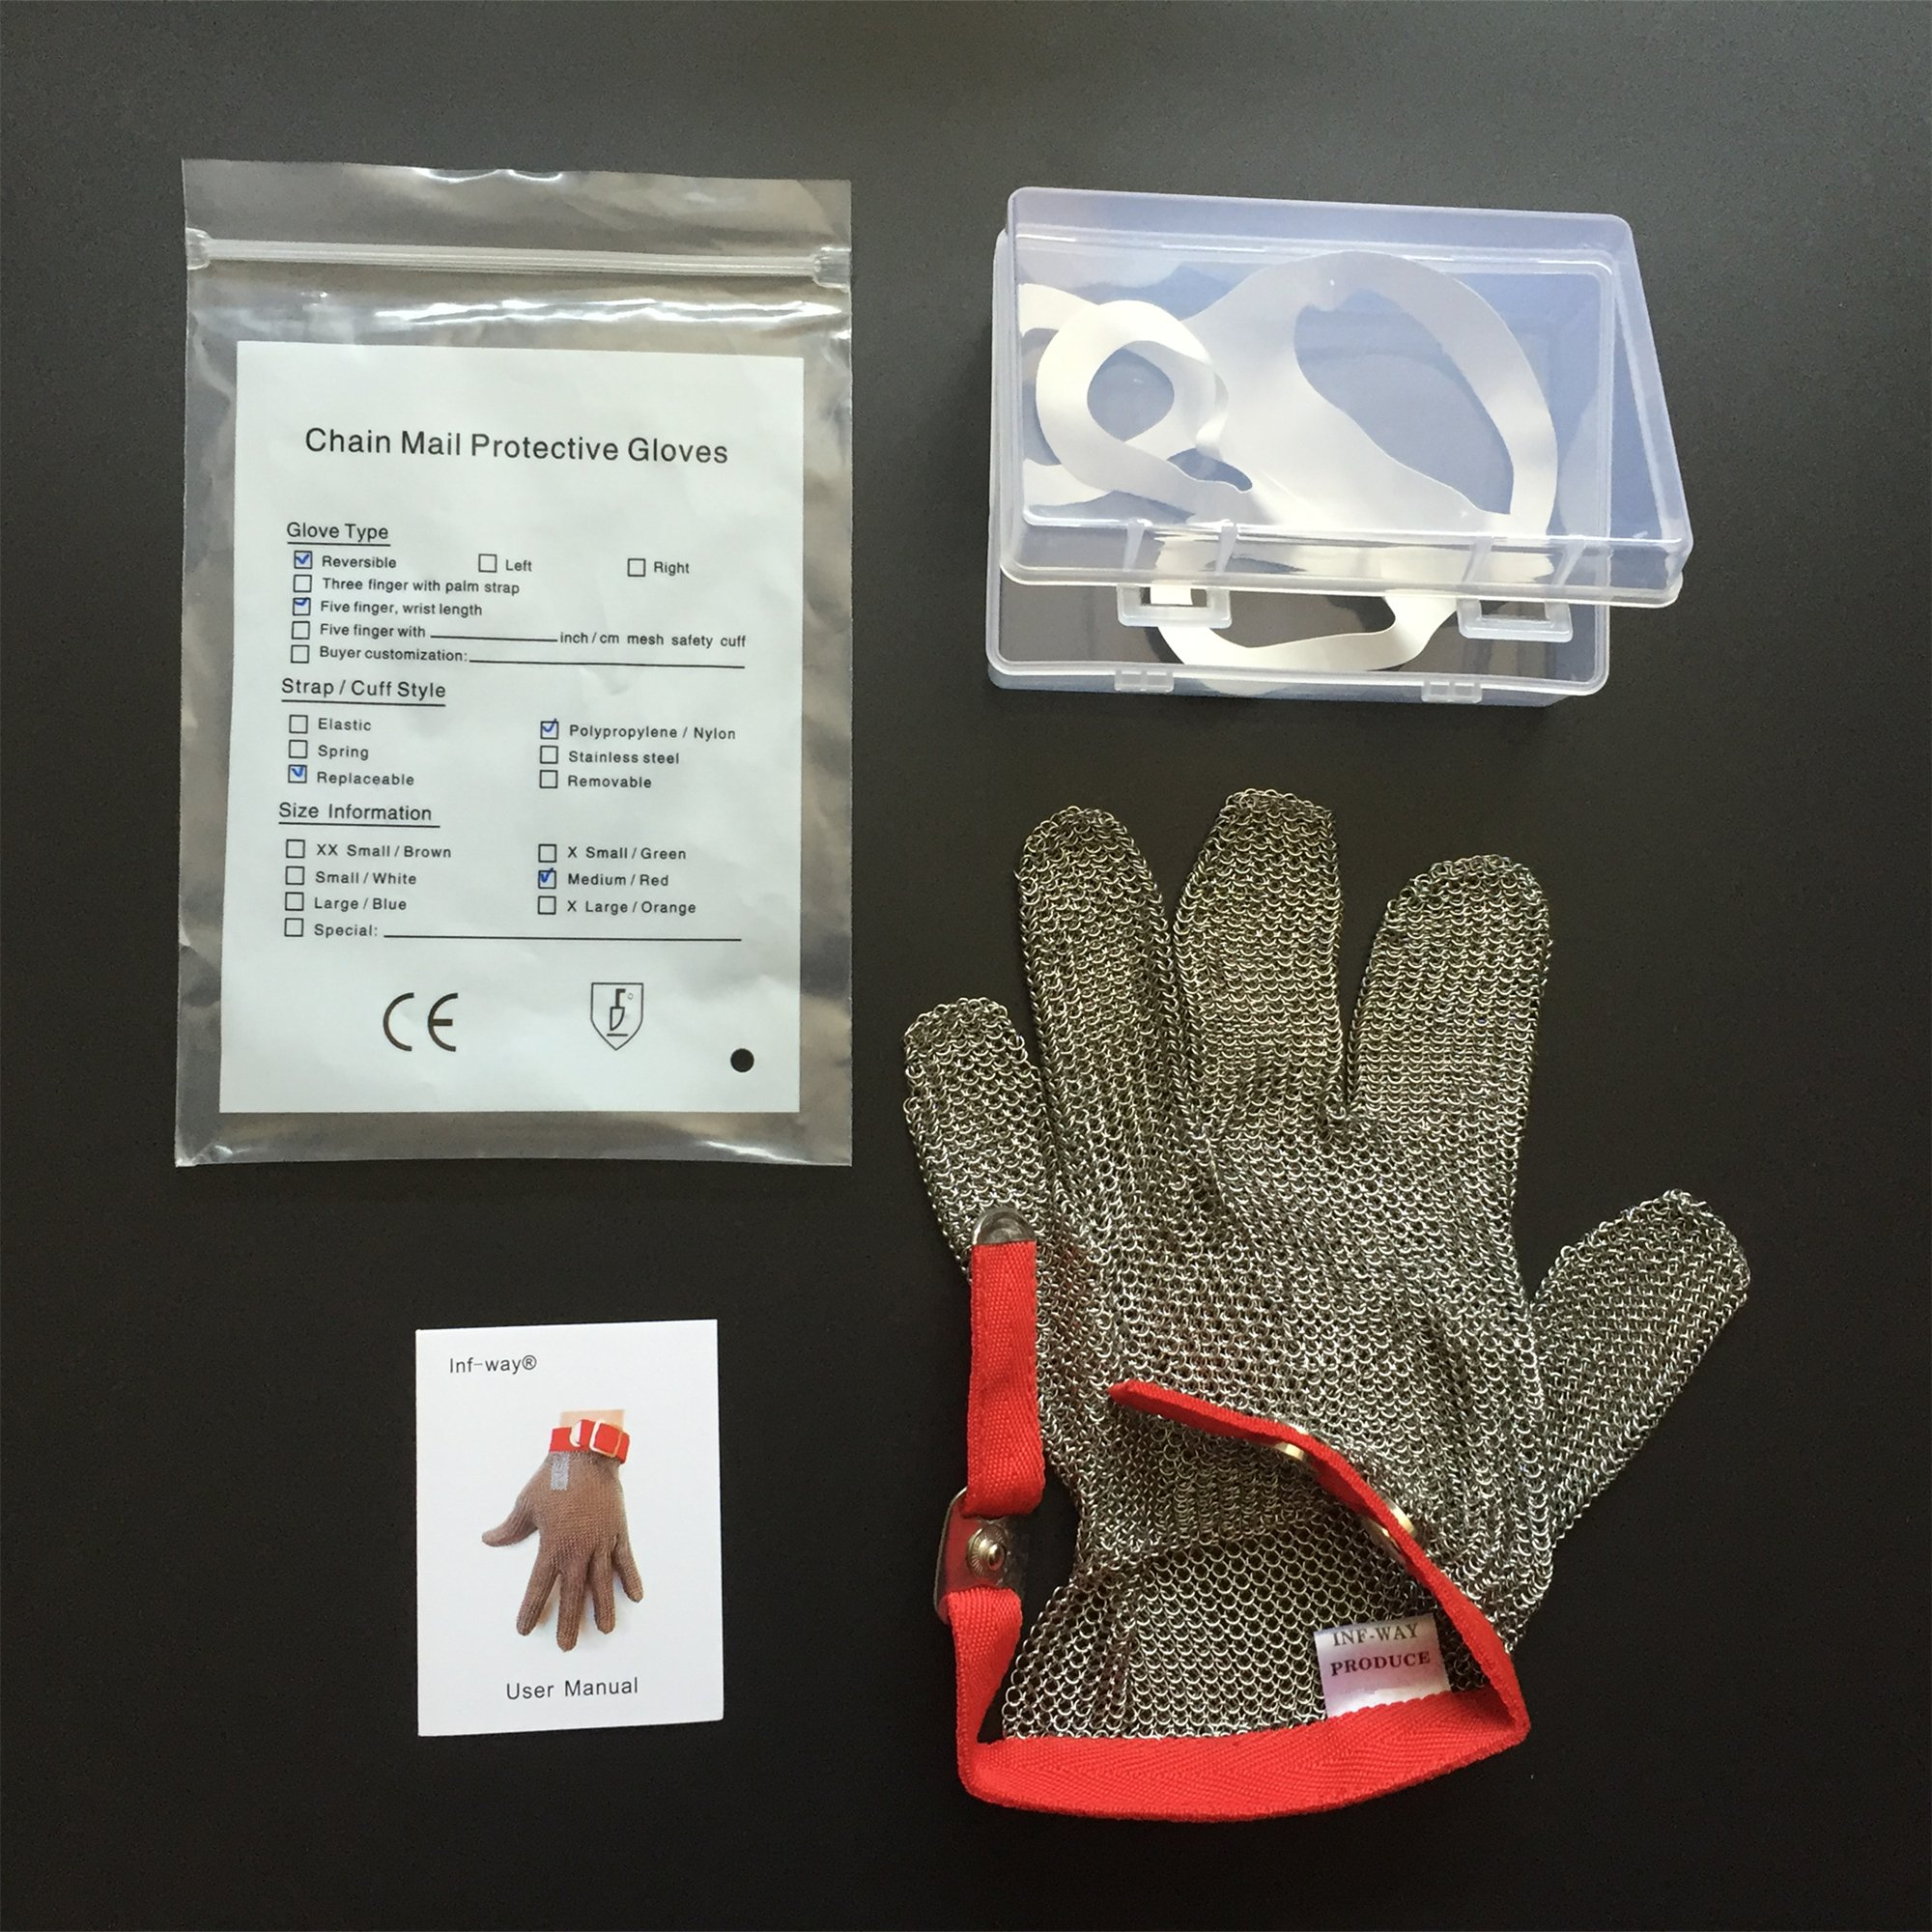 Inf-way 304L Brushed Stainless Steel Mesh Cut Resistant Chain Mail Gloves Kitchen Butcher Working Safety Glove - As Seen On TV 1pcs (Extra Large) by Inf-way (Image #6)